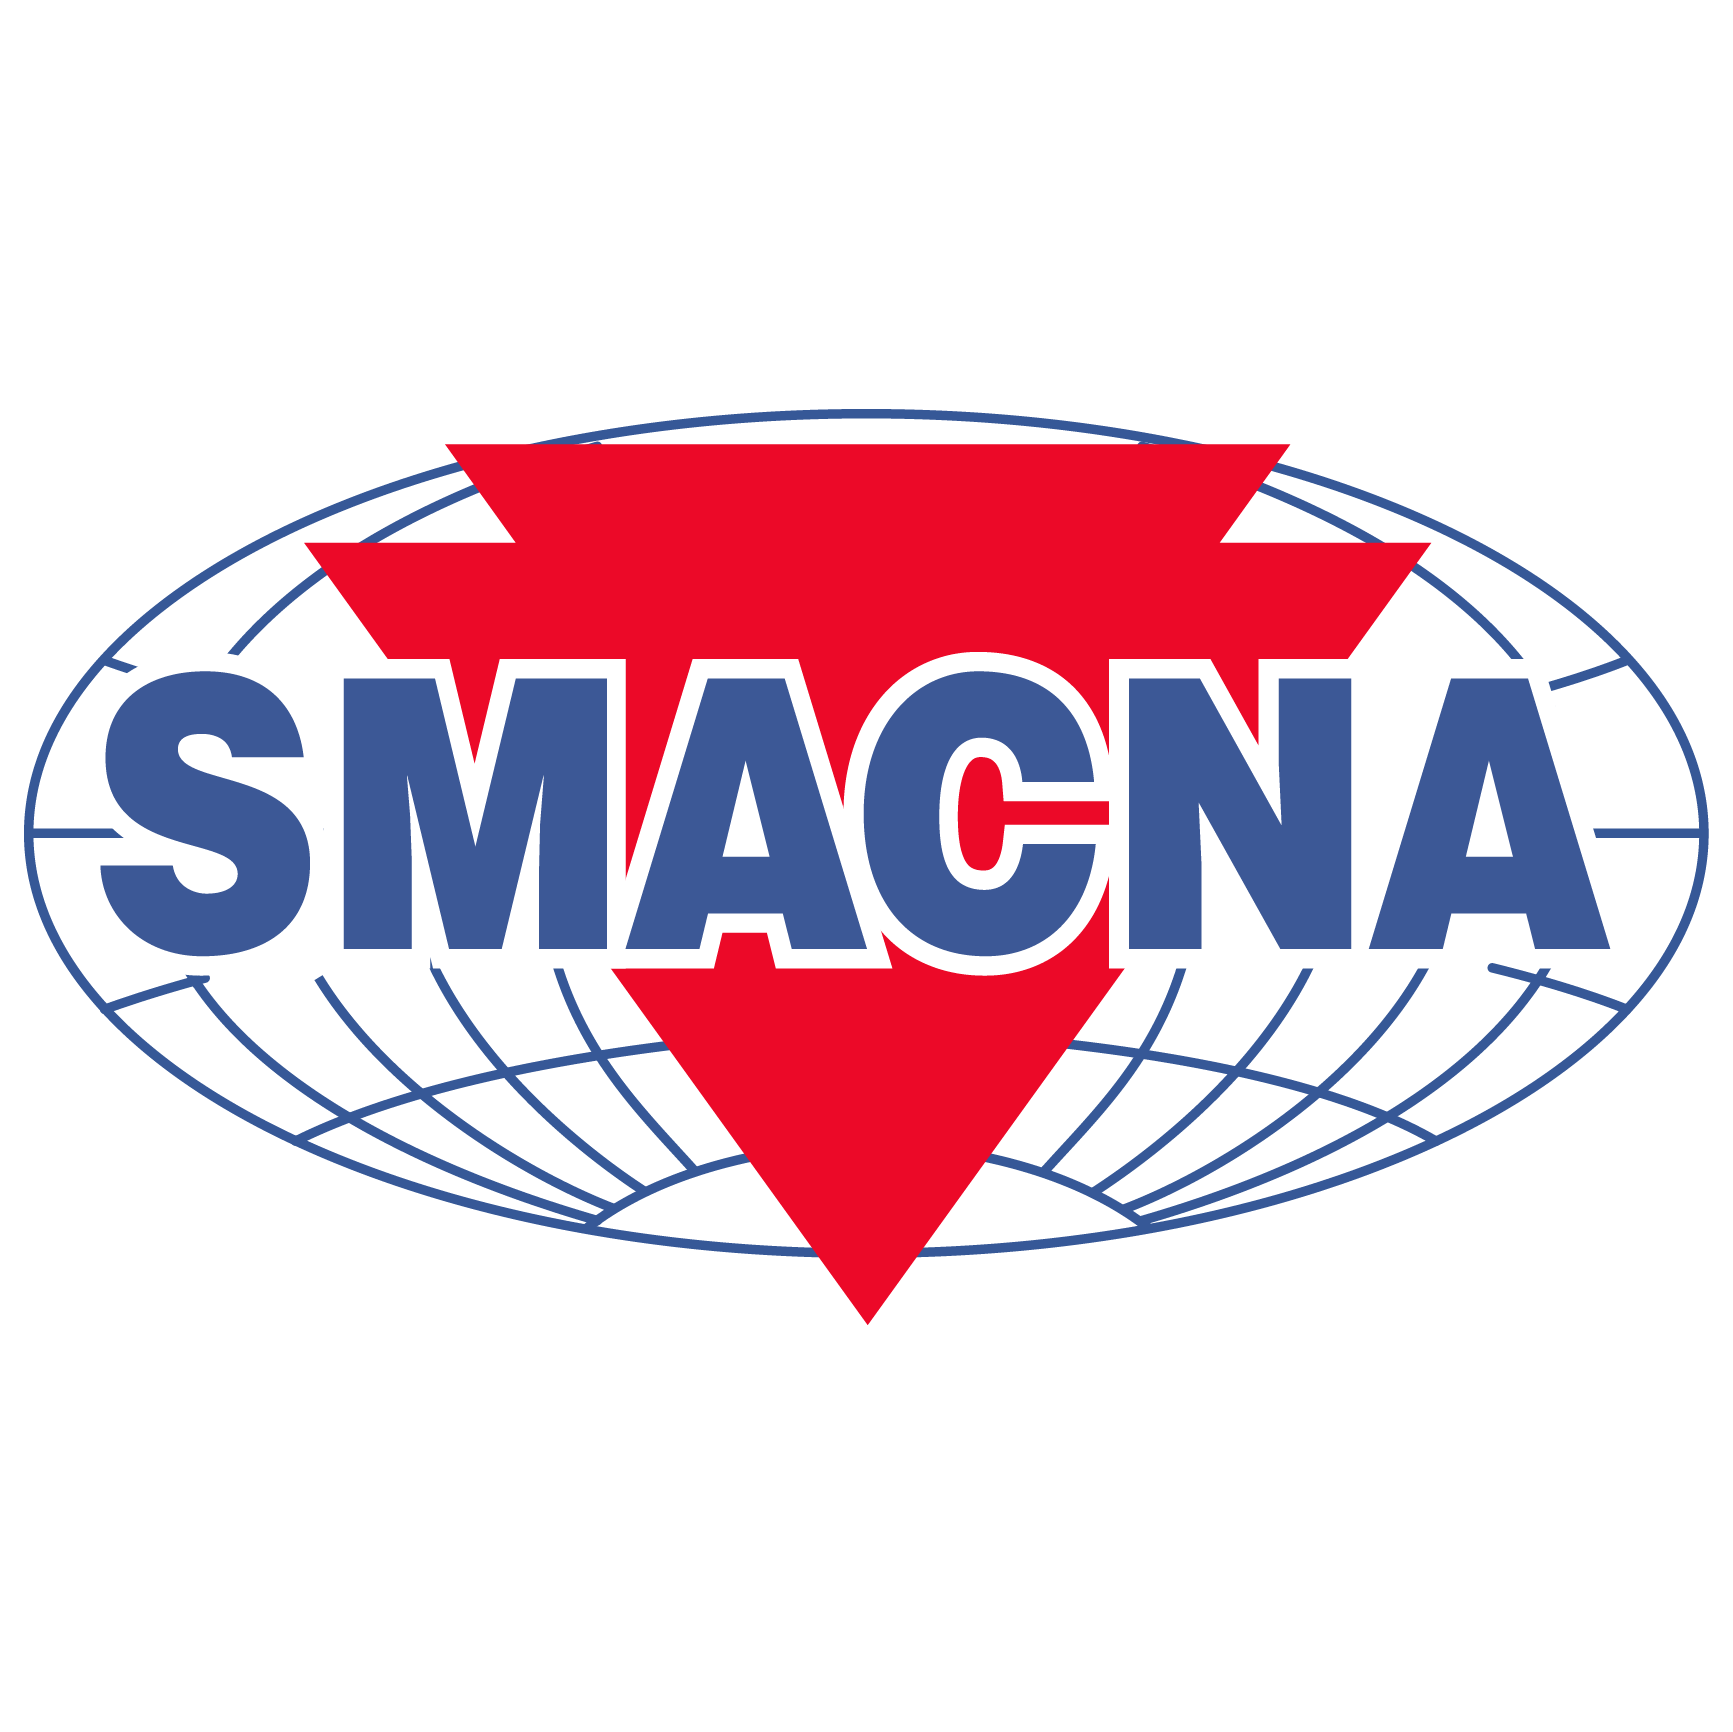 SMACNA-square.png